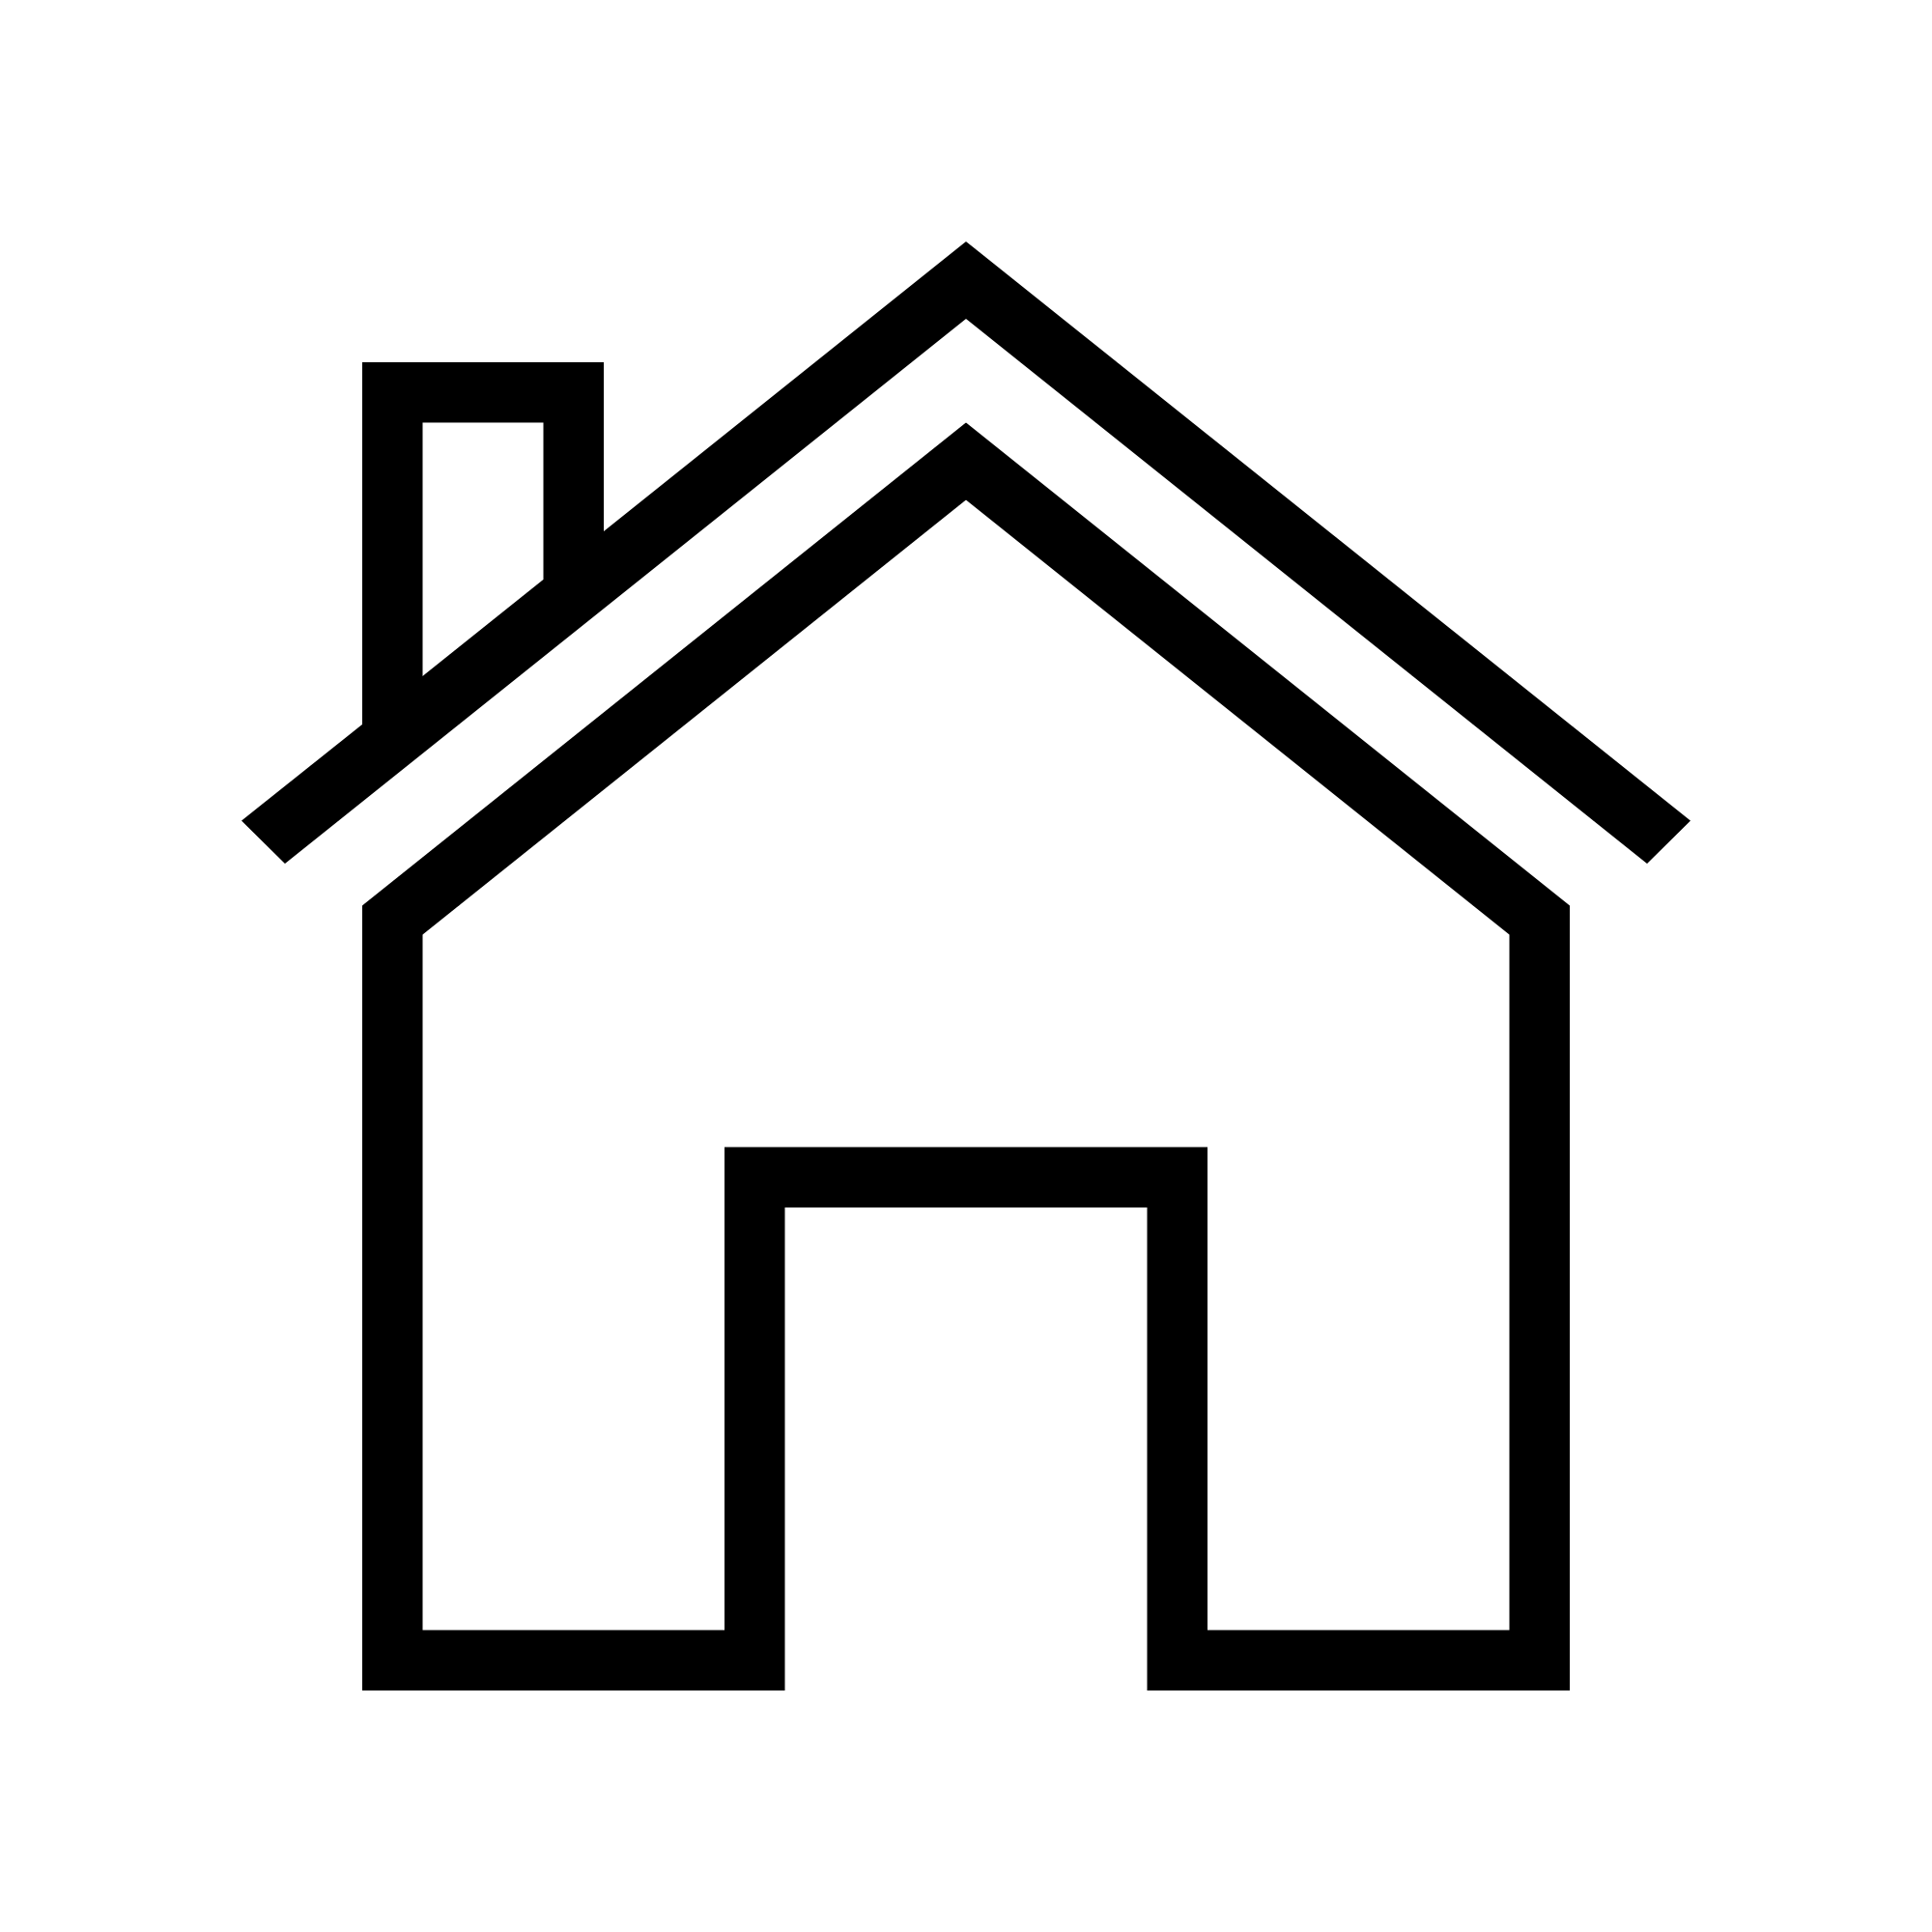 Clipart House Silhouette Clipart House Silhouette